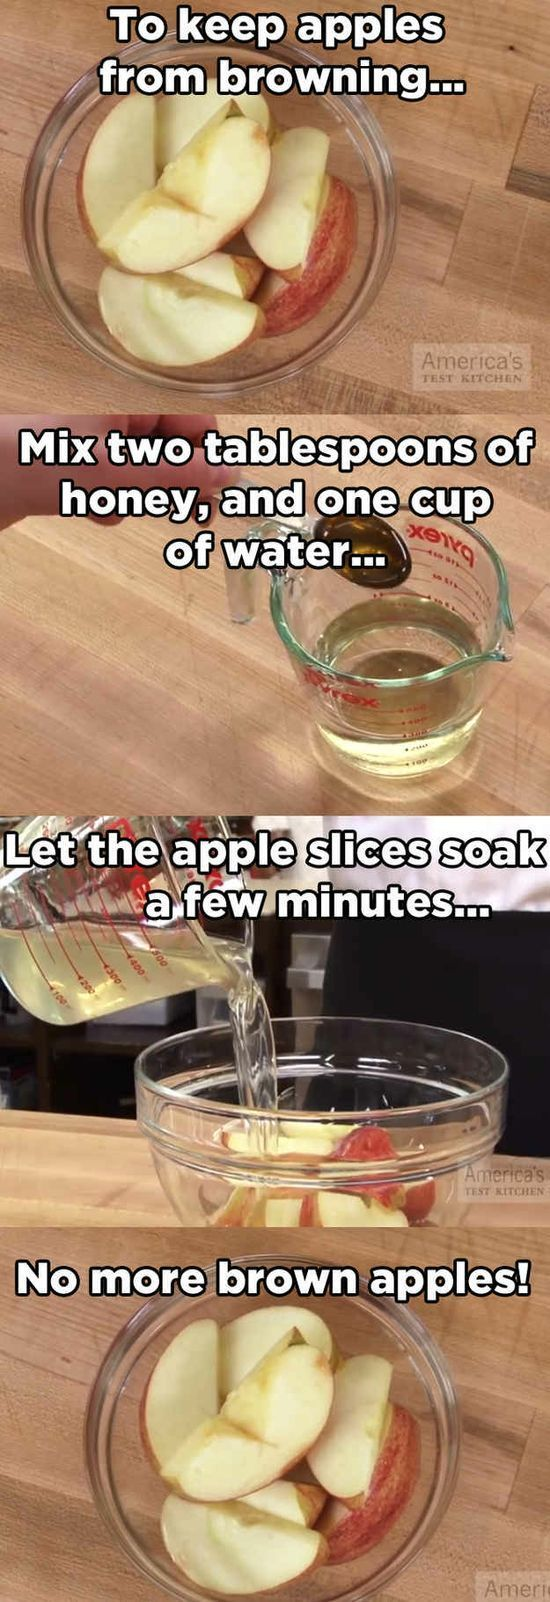 10 Cool Fruit Hacks to Try at Home!  4 - https://www.facebook.com/diplyofficial